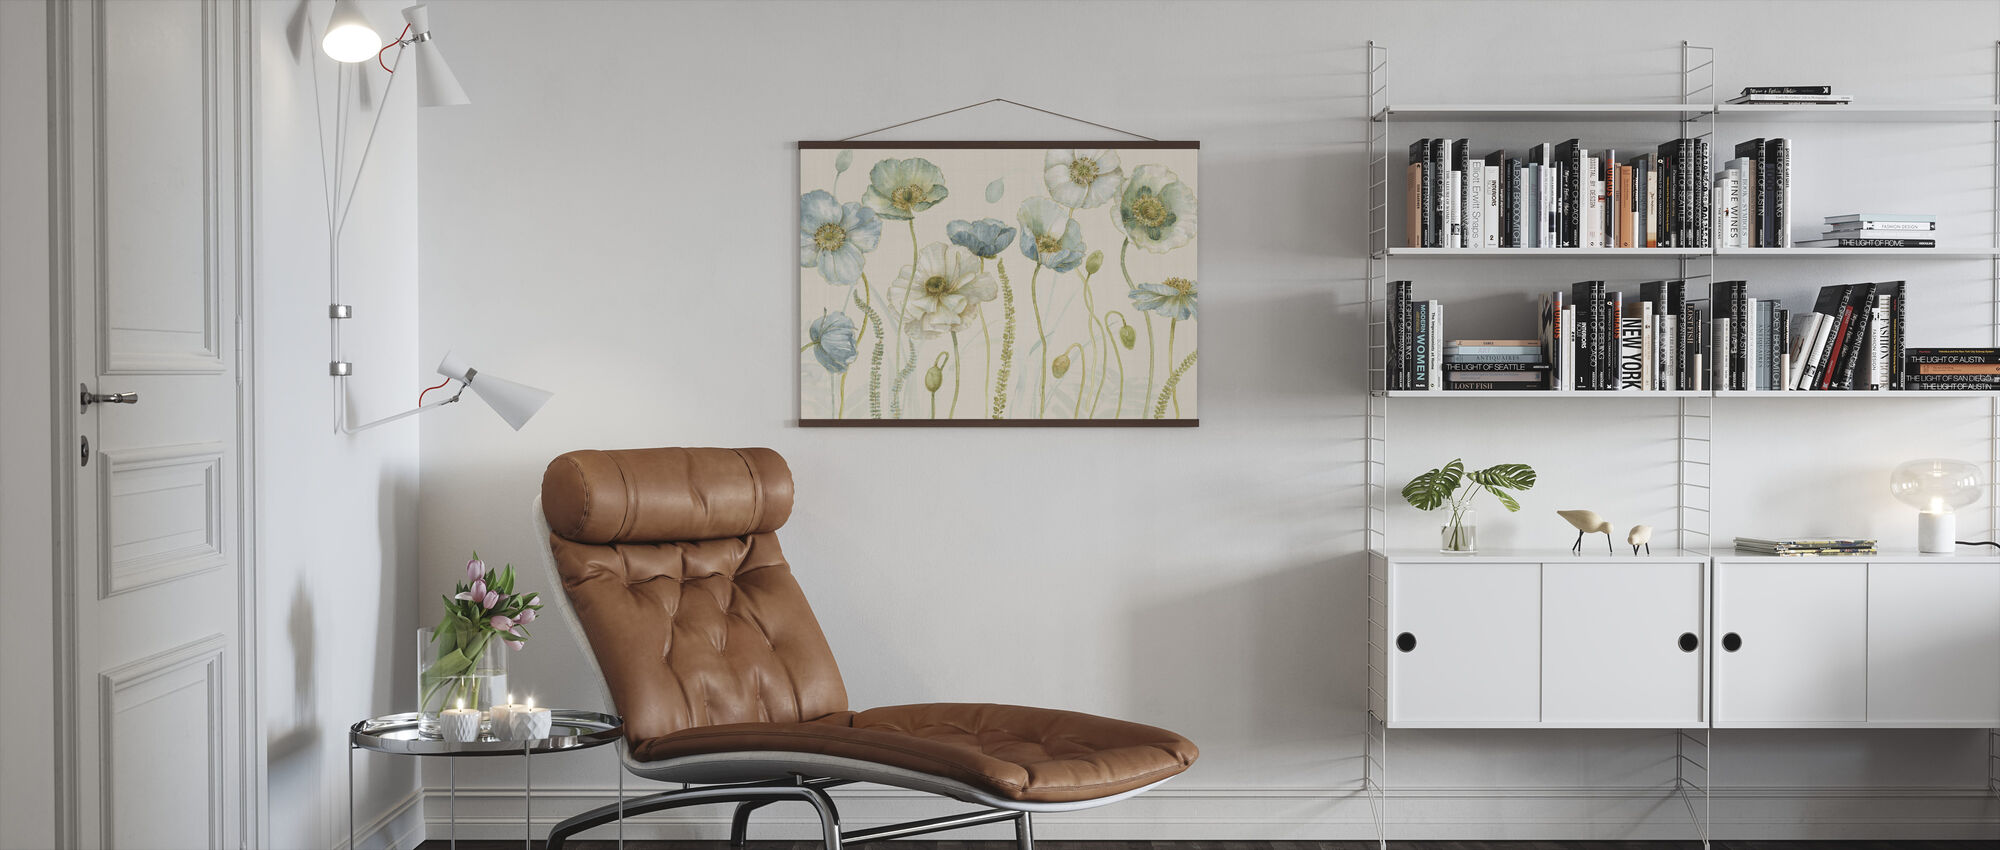 My Greenhouse Flowers on Linen - Cream - Poster - Living Room